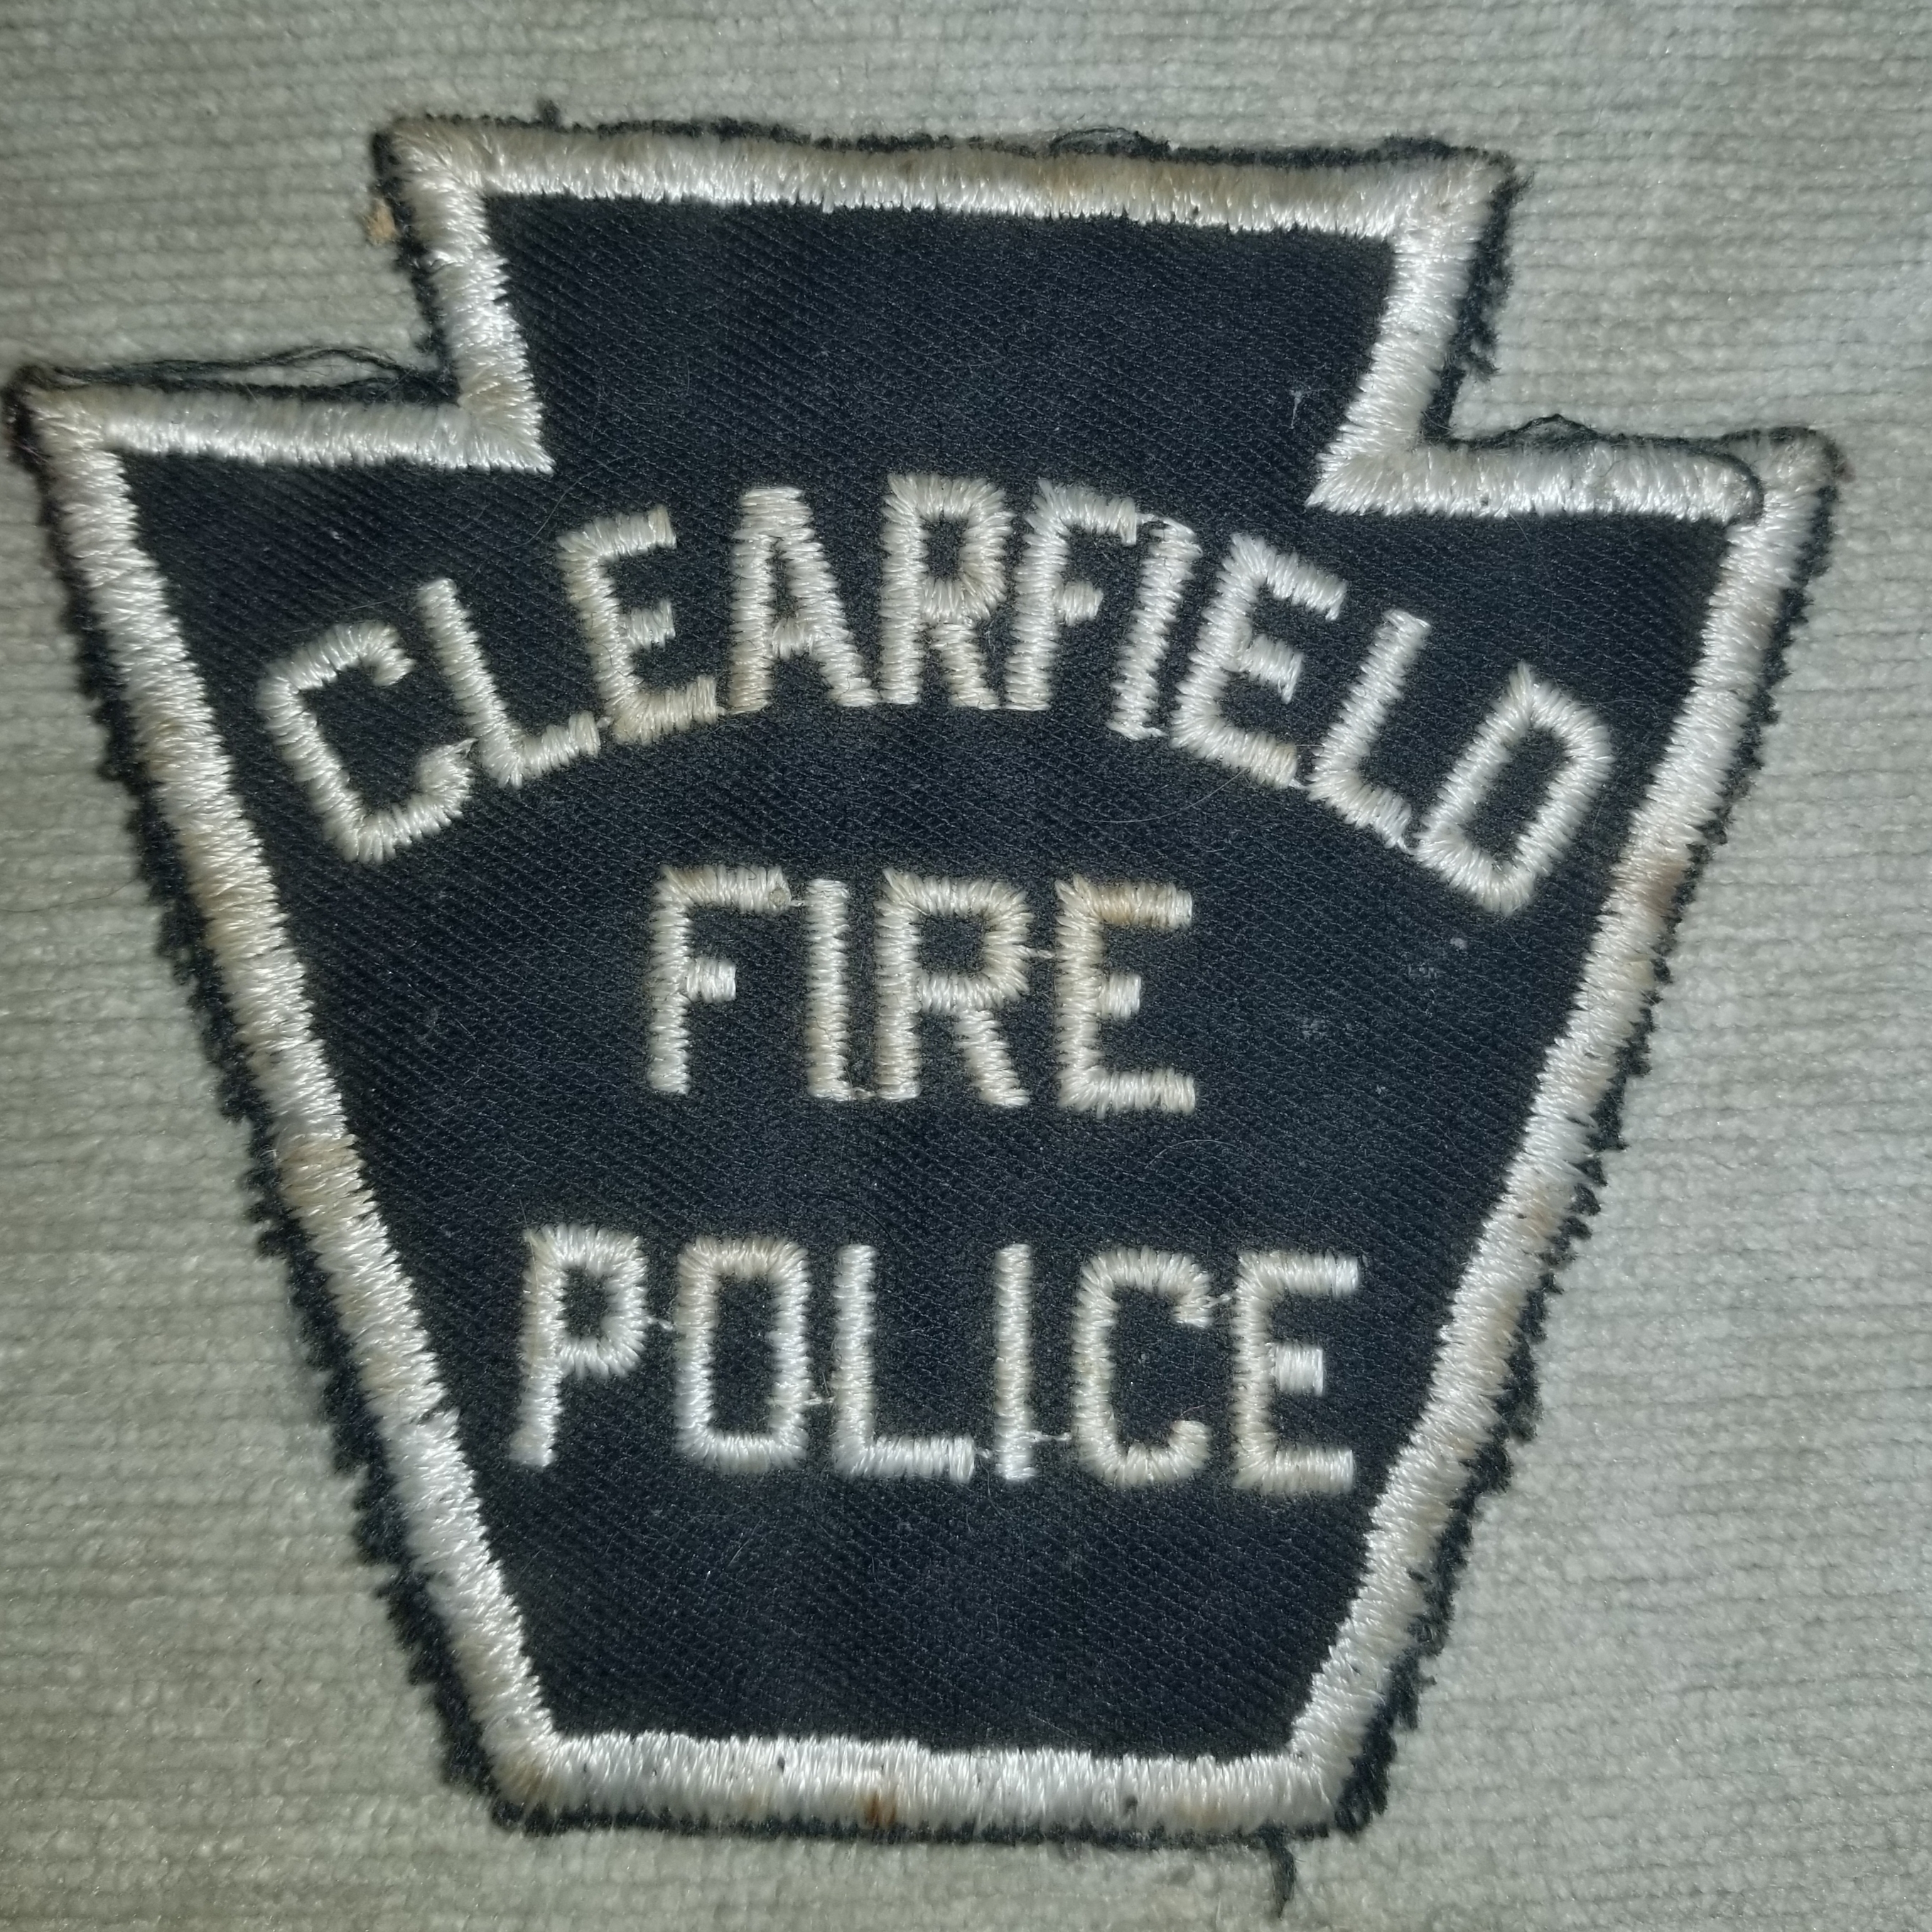 Clearfield Fire Police PA